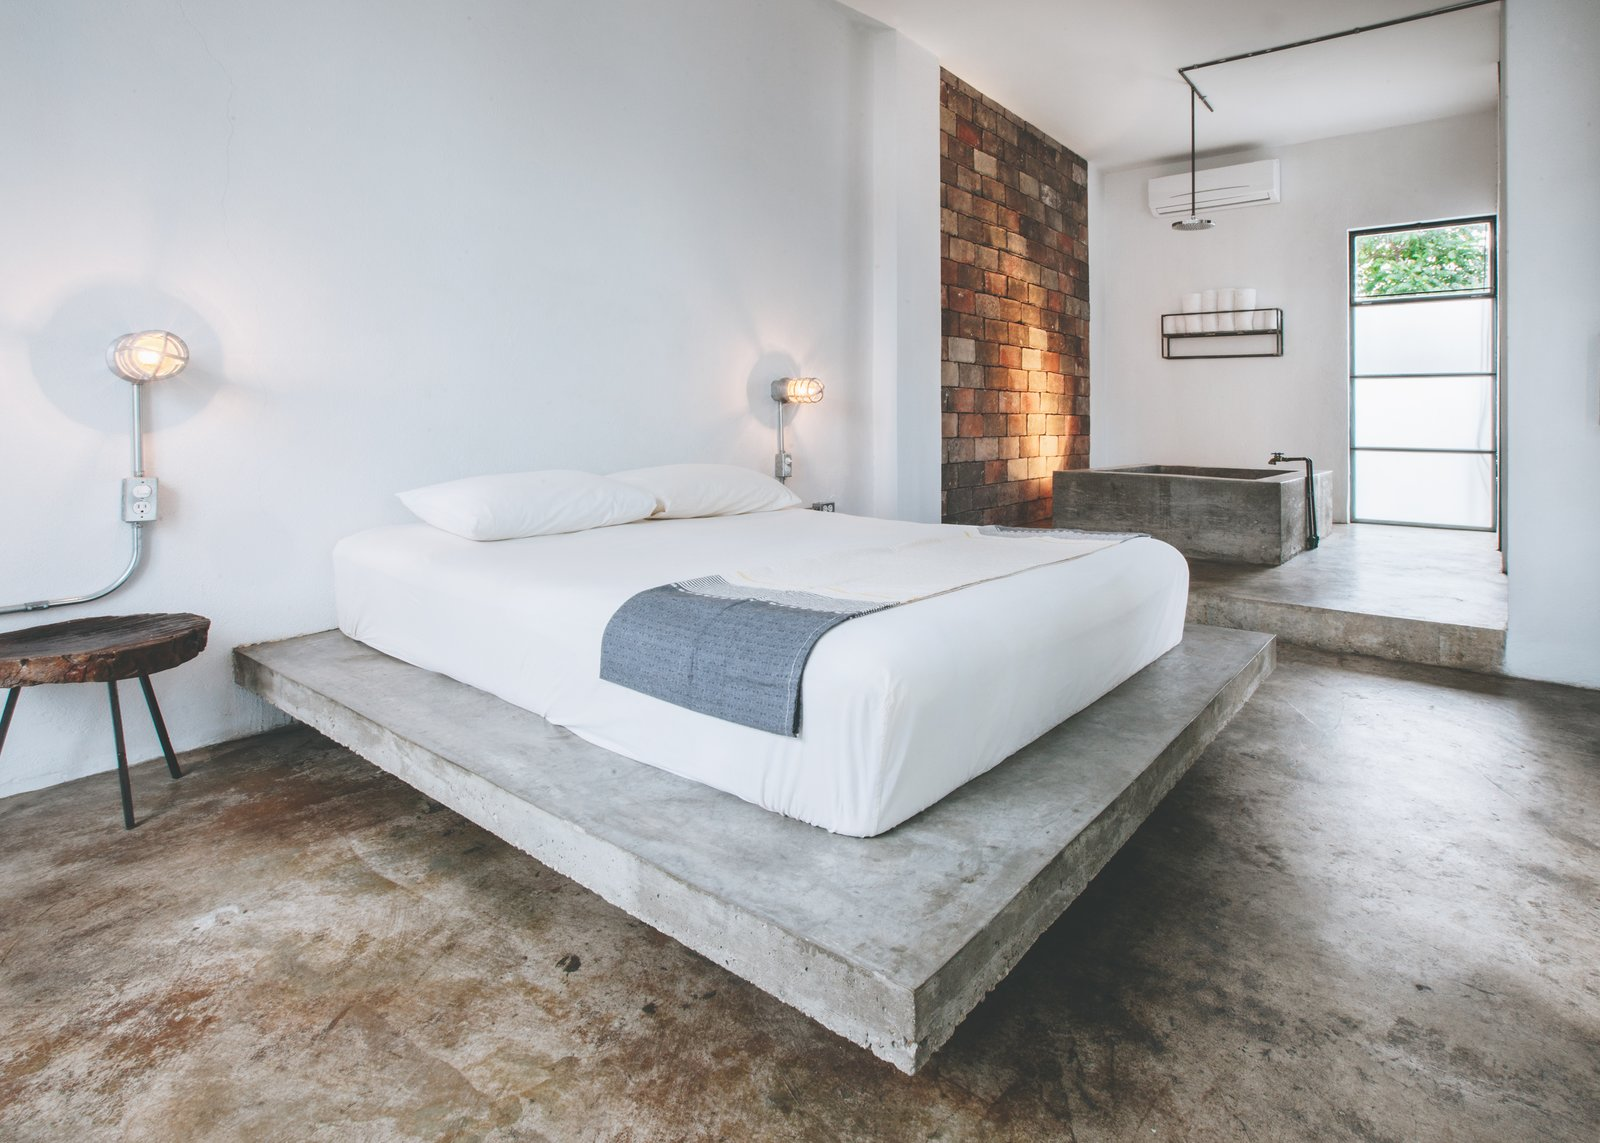 Bedroom, Bed, Accent, Wall, Night Stands, Lamps, and Concrete A 270-square-foot guest room includes a poured concrete tub with a rainhead shower.   Best Bedroom Night Stands Wall Concrete Photos from Become a Hotelier in a Surfer's Paradise With This Chic Boutique Property Asking $2.6M